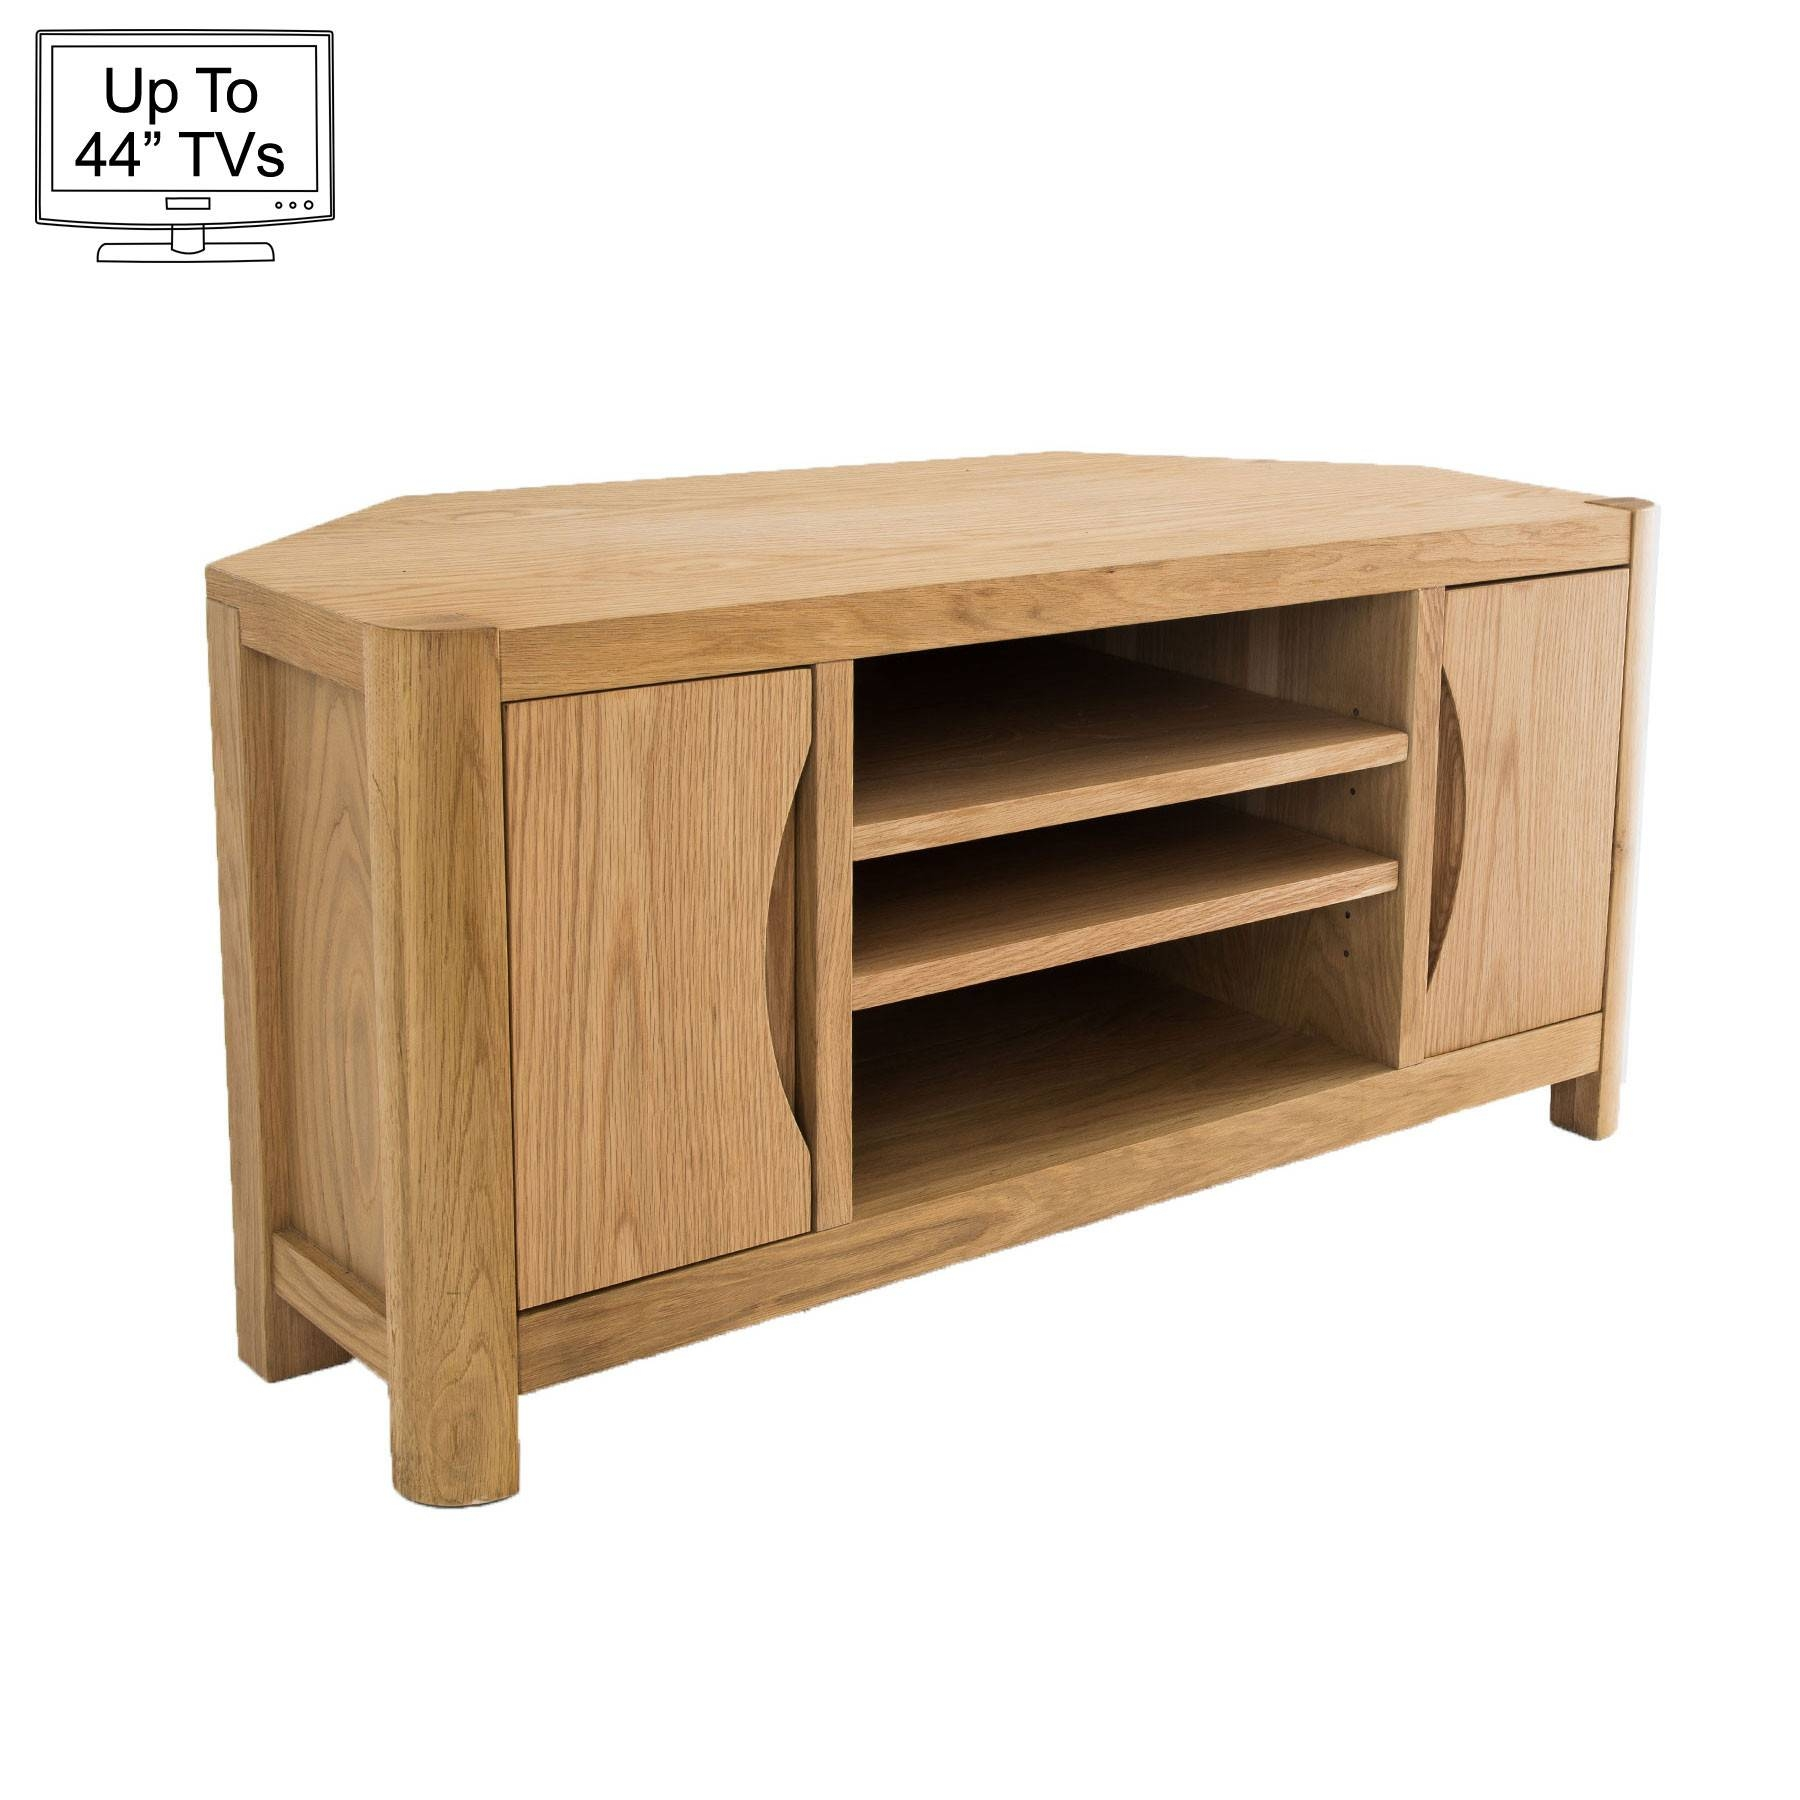 "Light Oak Corner Tv Stand For Up To 44"" Tvs Throughout Light Oak Corner Tv Cabinets (View 5 of 15)"